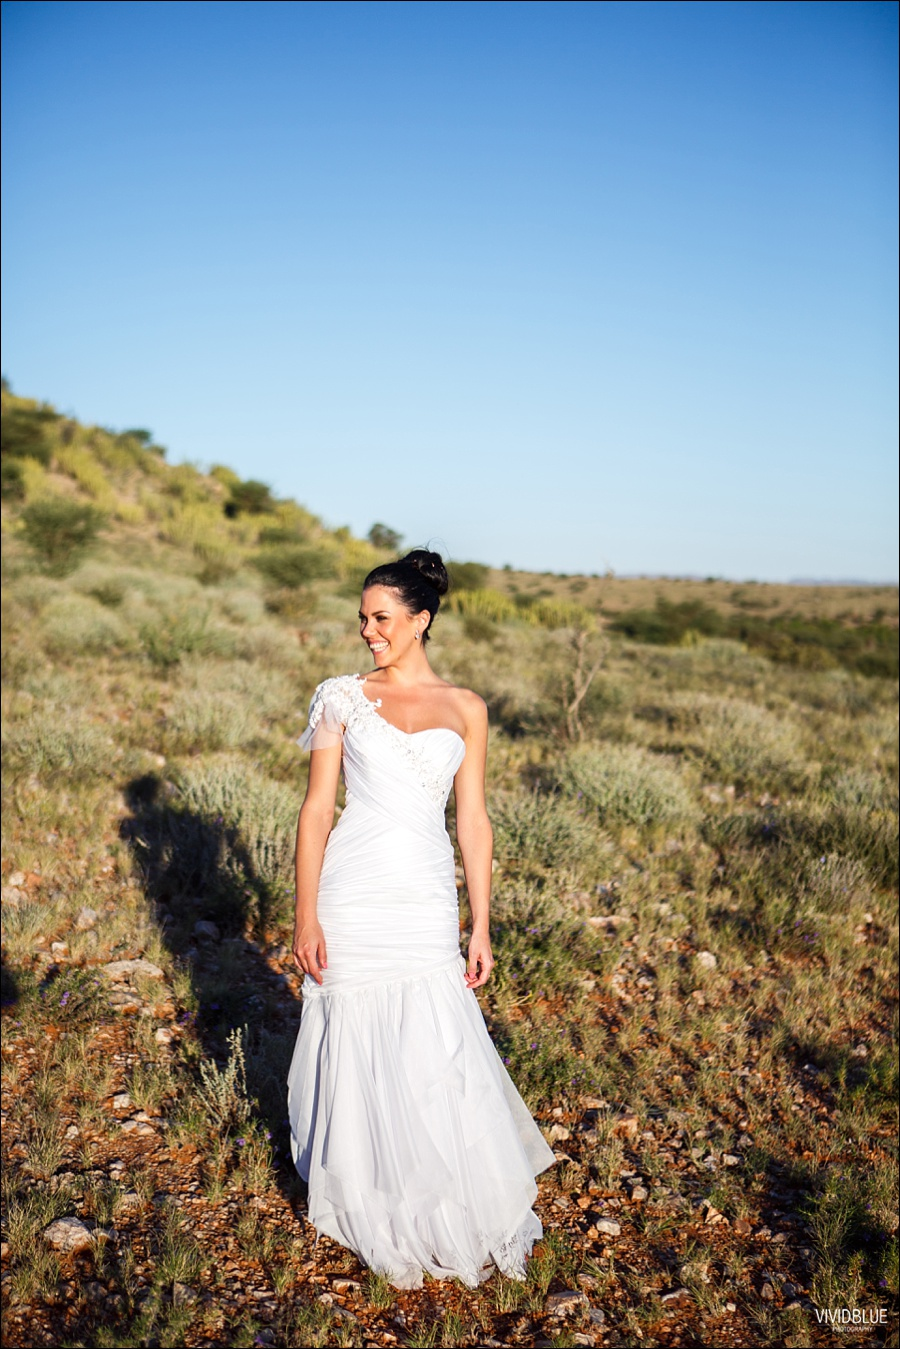 VividBlue-louis-christa-wedding-upington-052